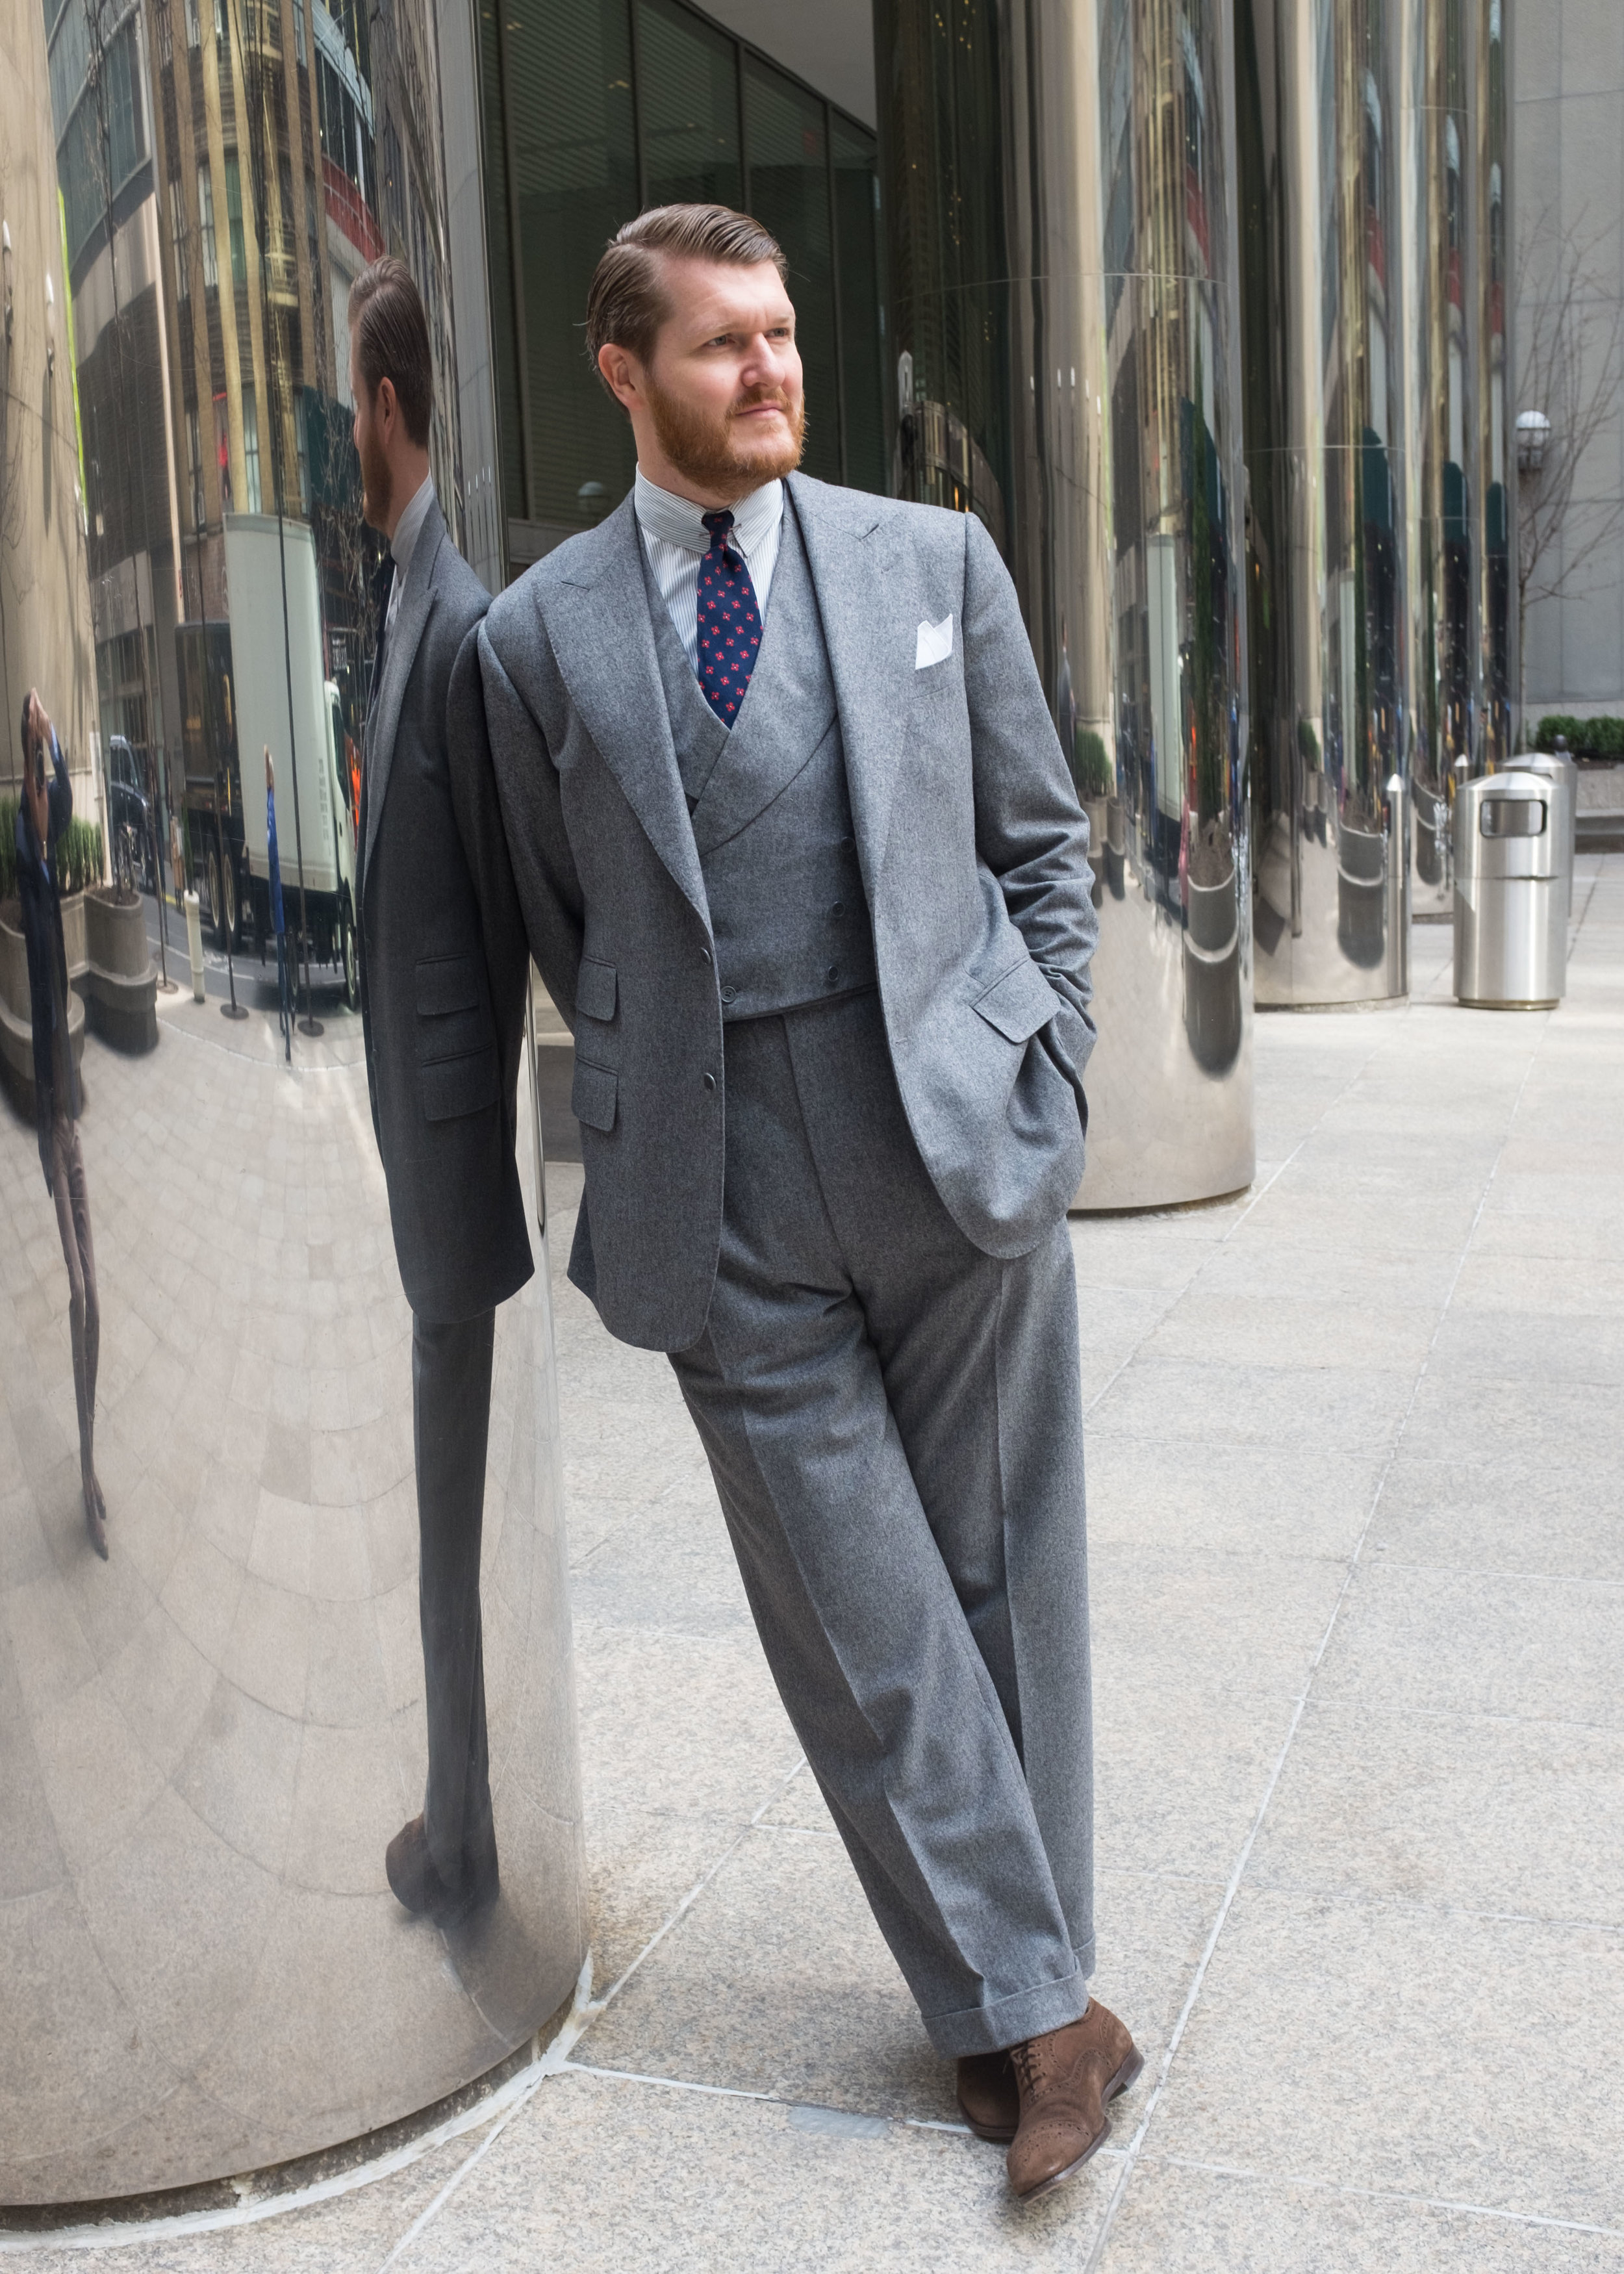 Crowley's made-to-measure suit and bespoke waistcoat from Alan Flusser Custom.